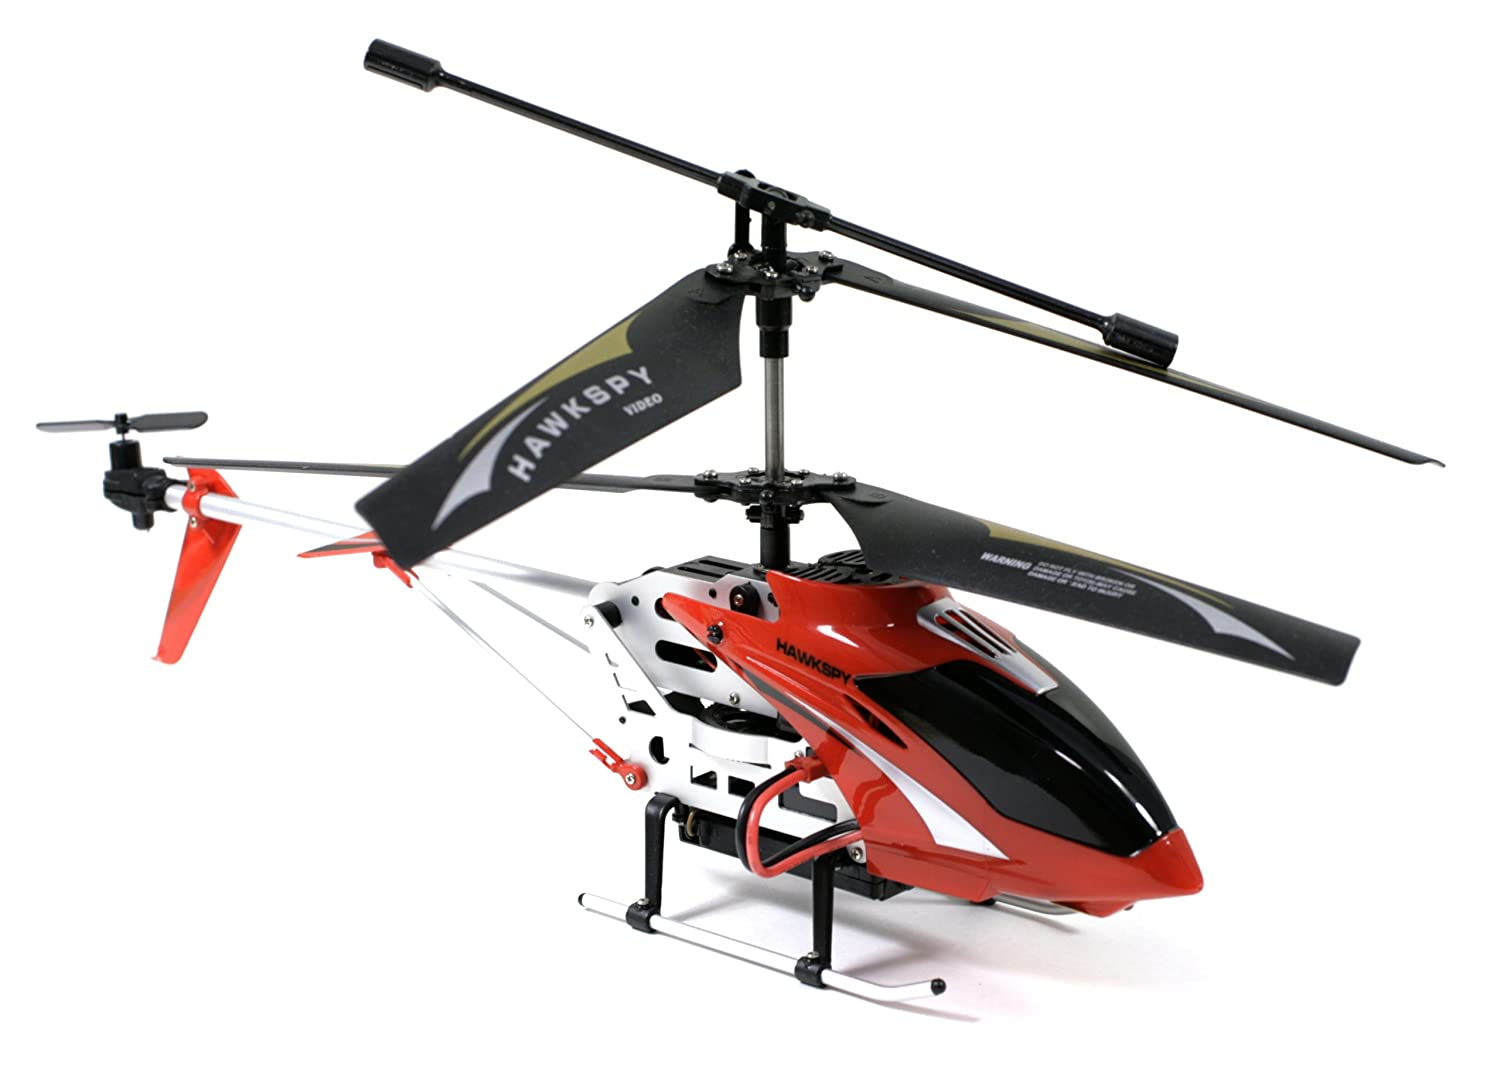 Remote Control Helicopter With Video Camera Amazon com Remote Control